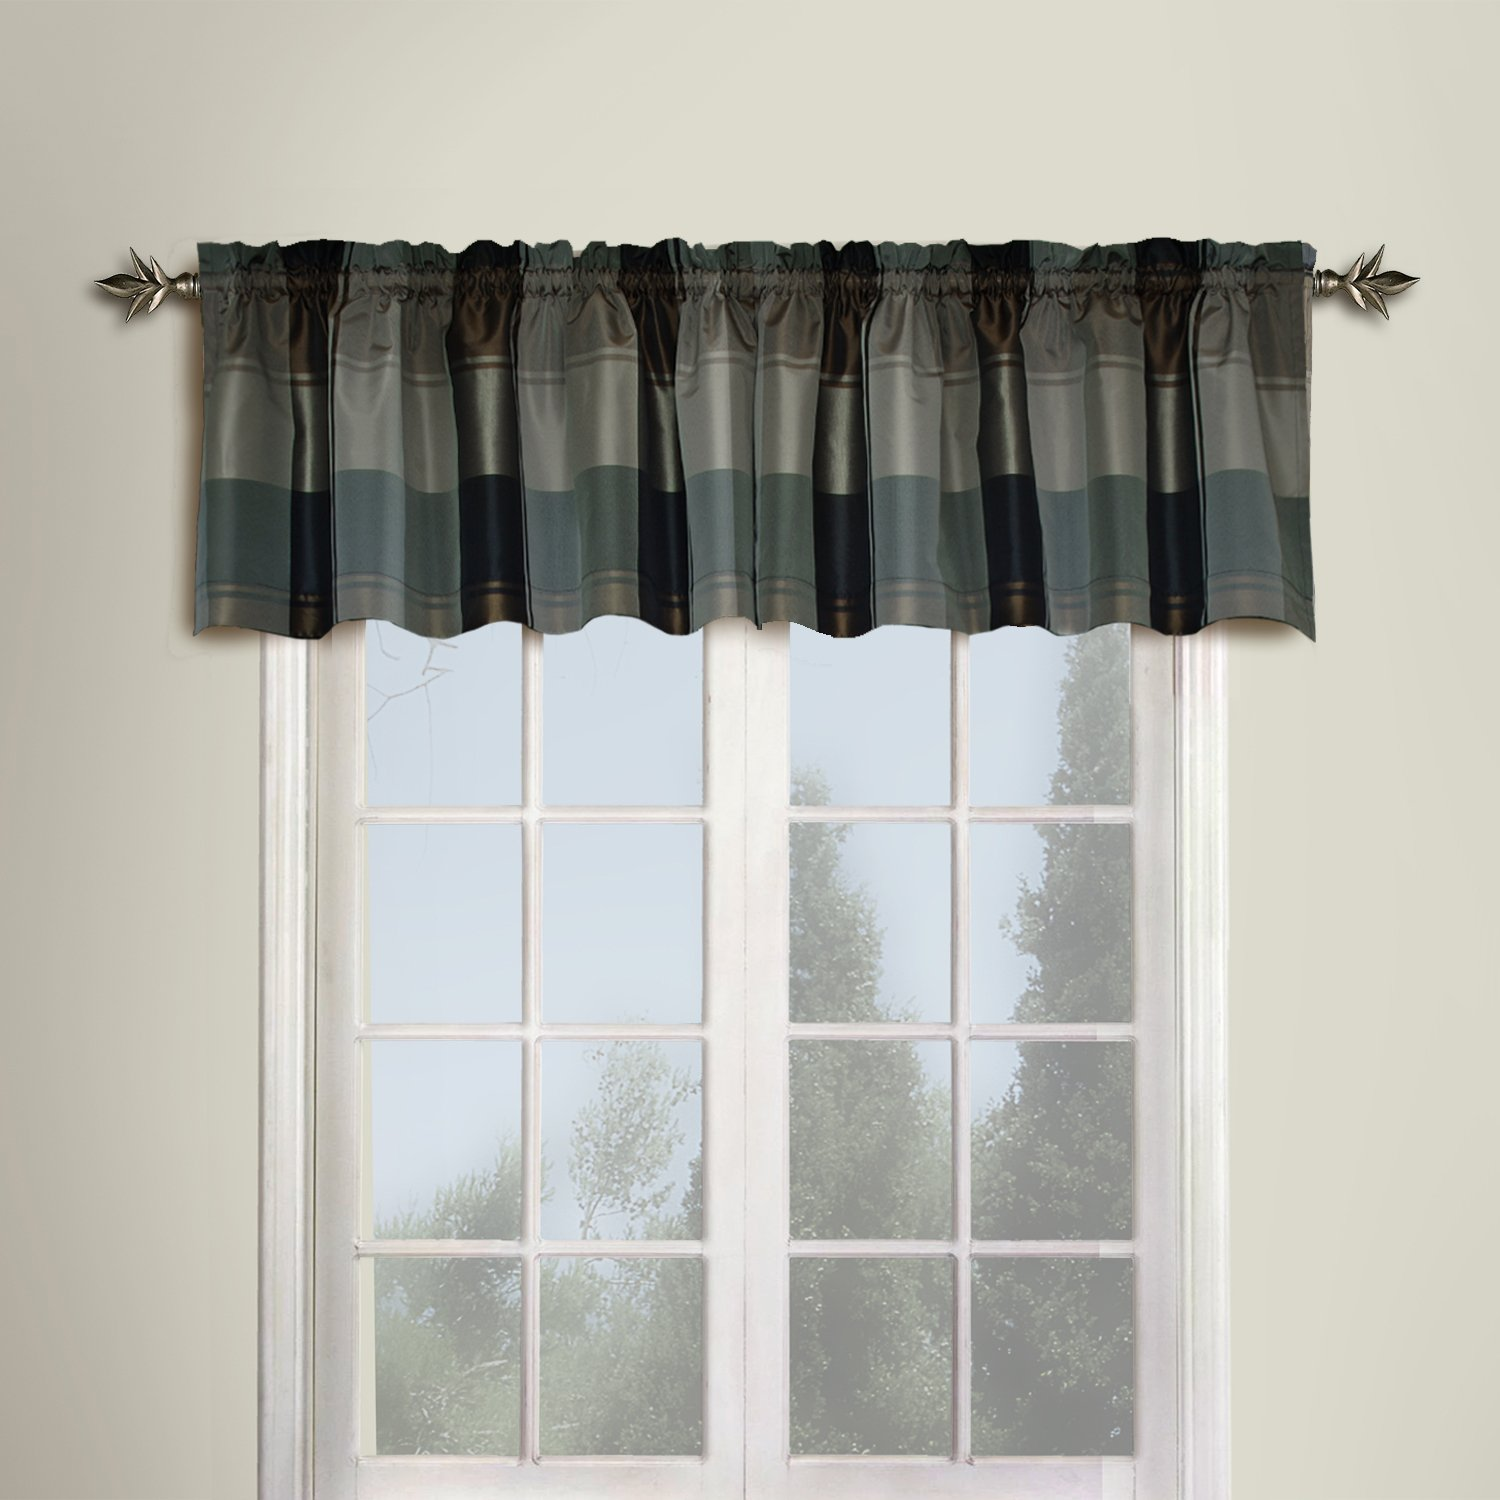 amazon com united curtain plaid straight valance 54 by 18 inch amazon com united curtain plaid straight valance 54 by 18 inch burgundy home kitchen